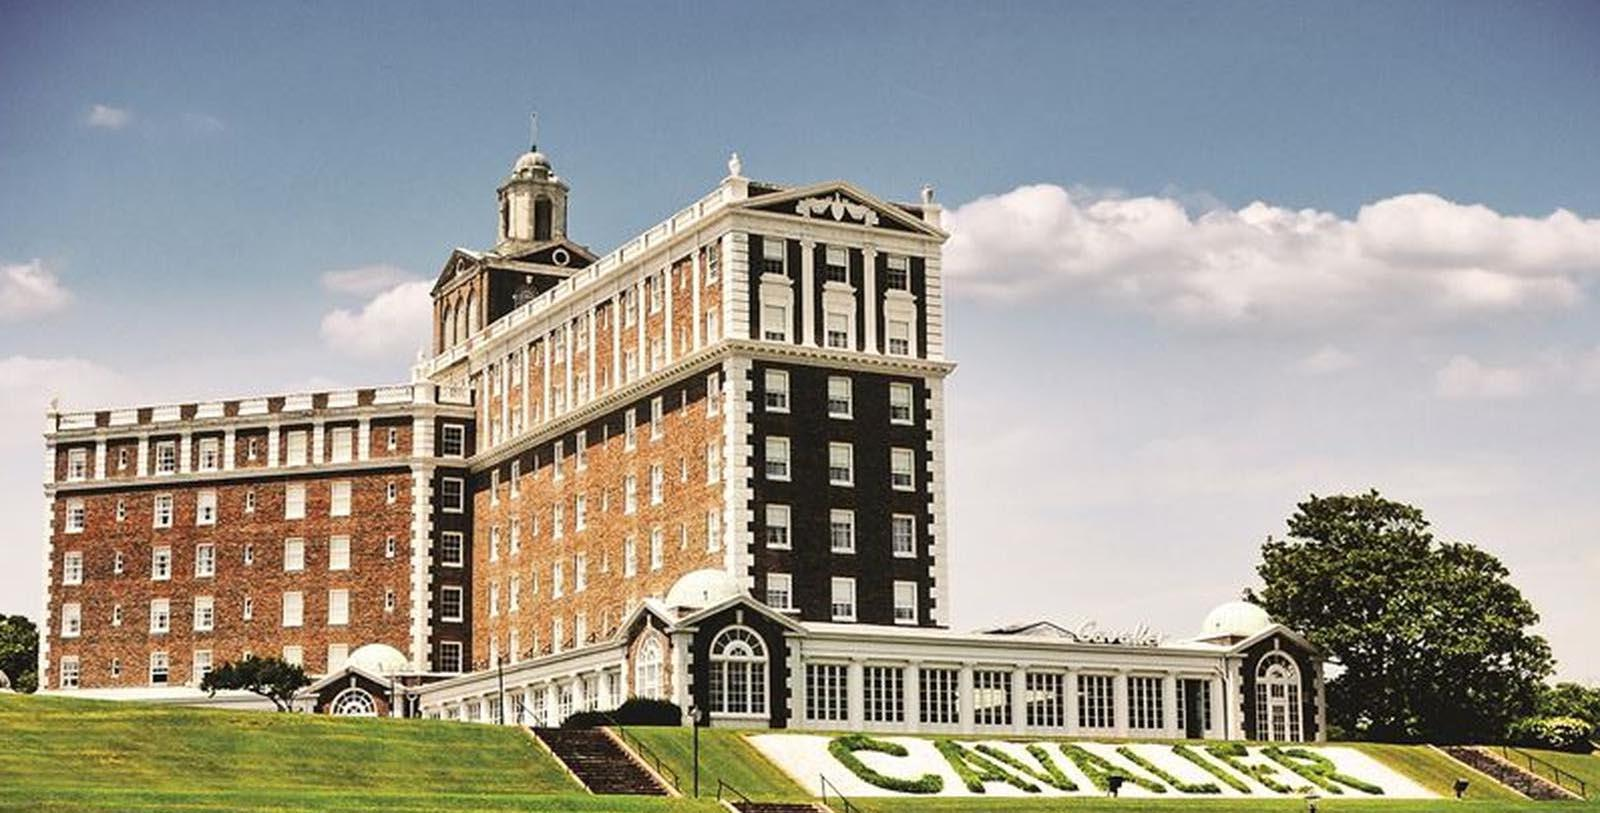 Image of The Cavalier, Member of Historic Hotels of America, Overview